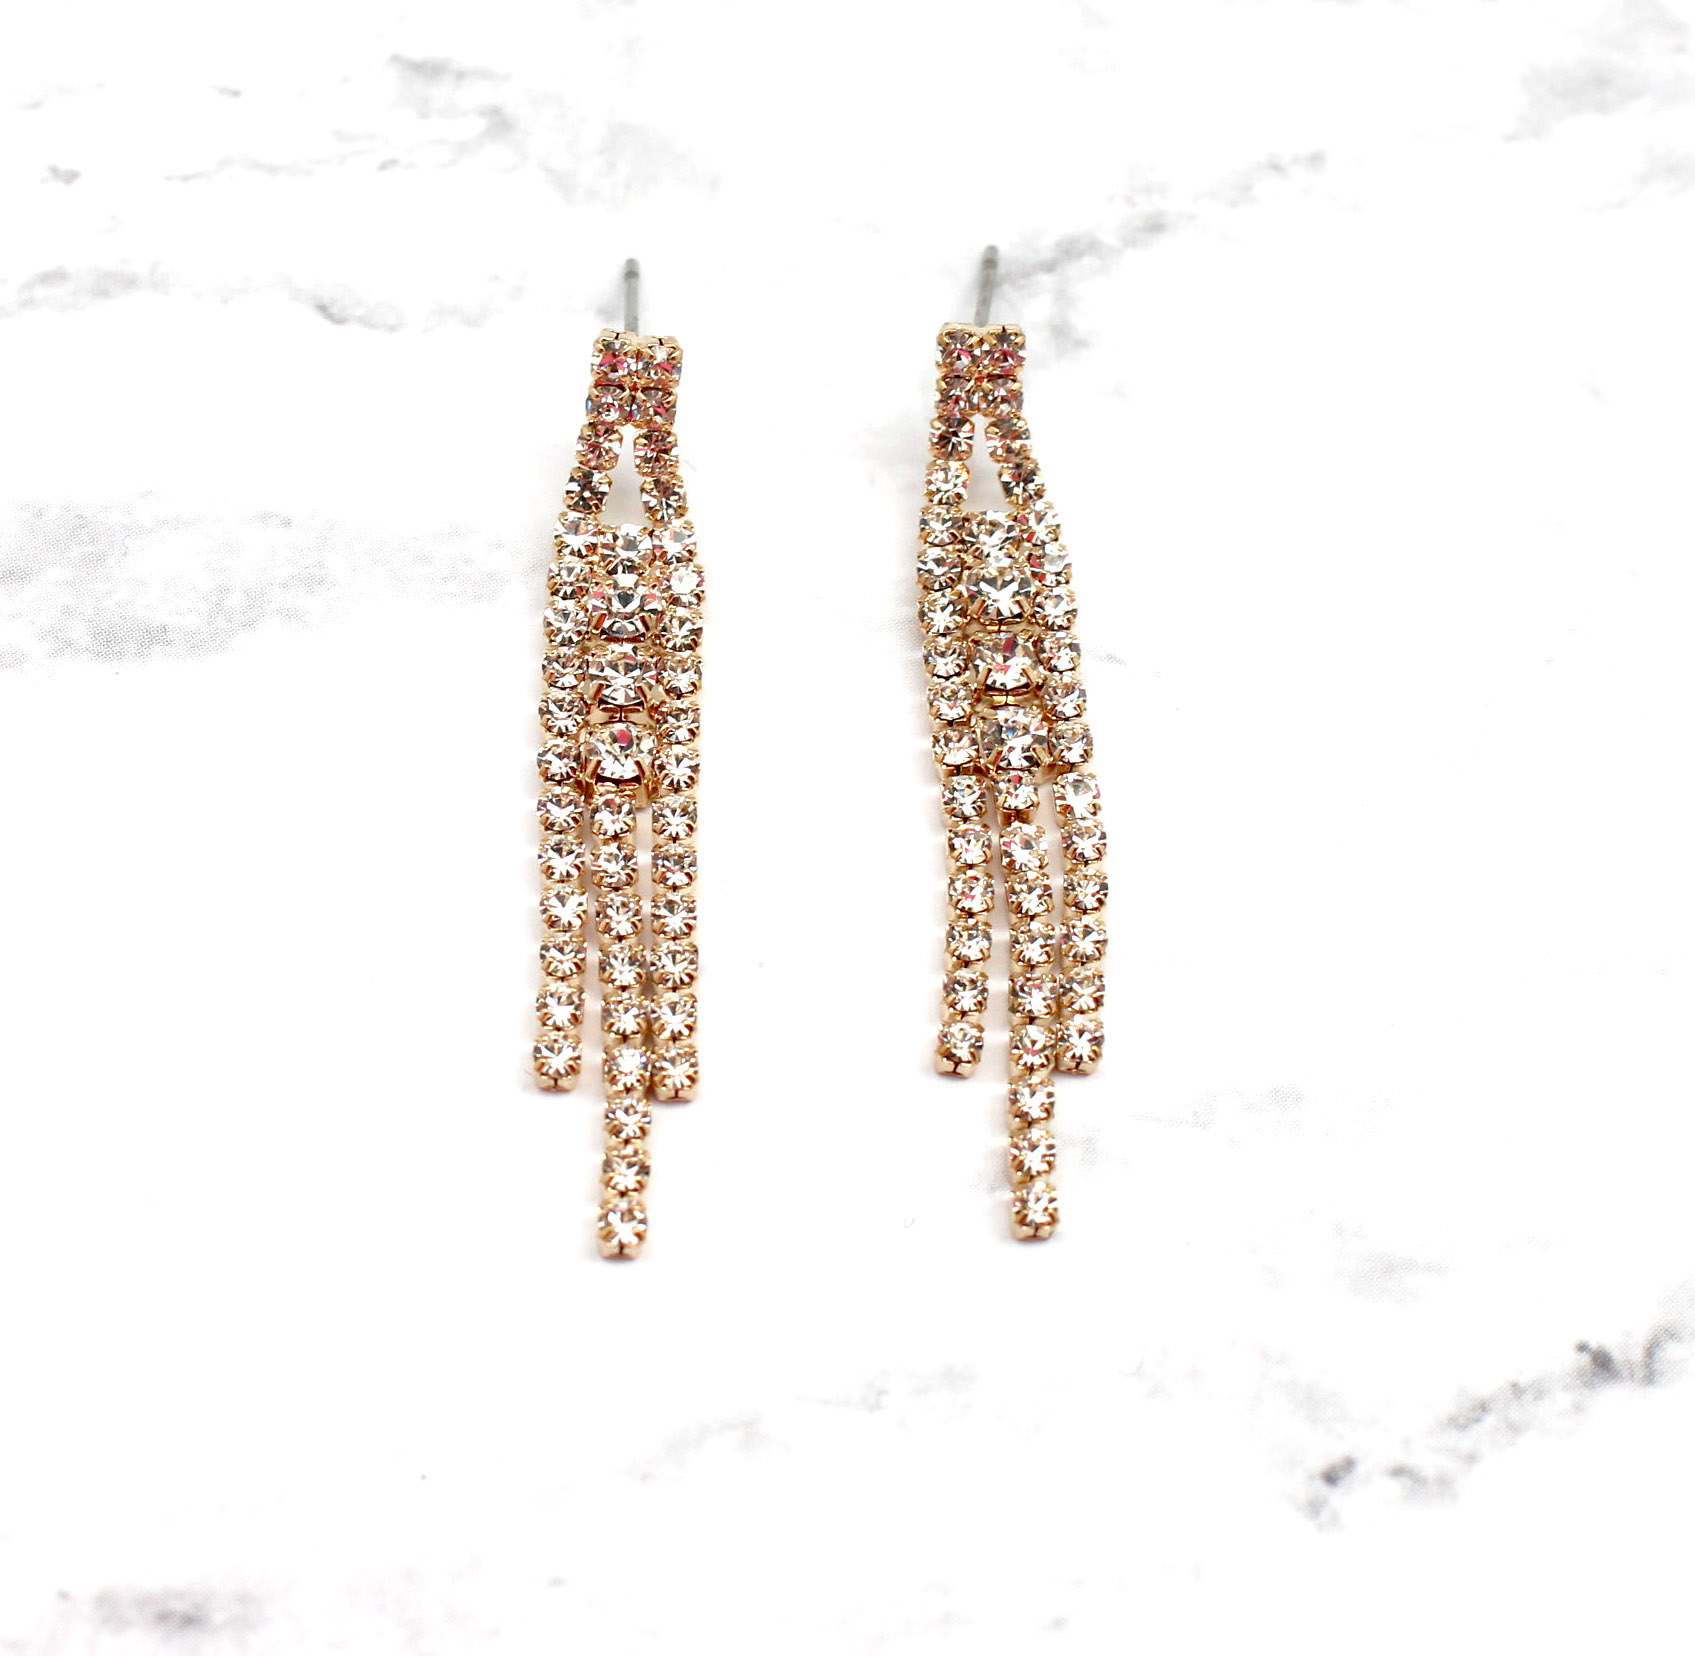 The Dazzle Earring